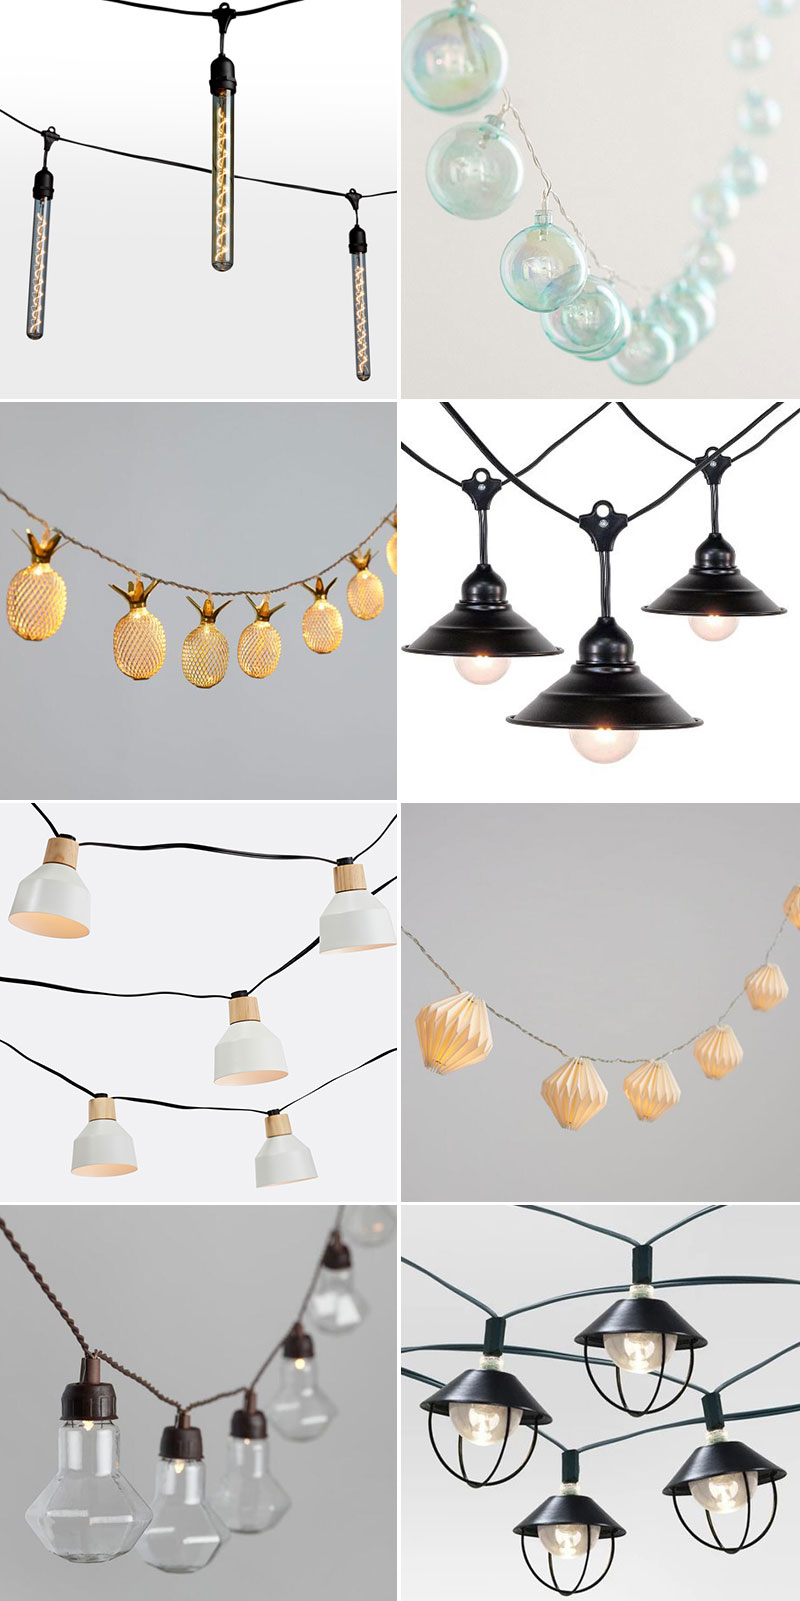 my ultimate outdoor string lights round up for your deck, patio, or outdoor space. #cafelights #lighting #romanticlighting #stringlights #roundup #outdoordecor #outdoor